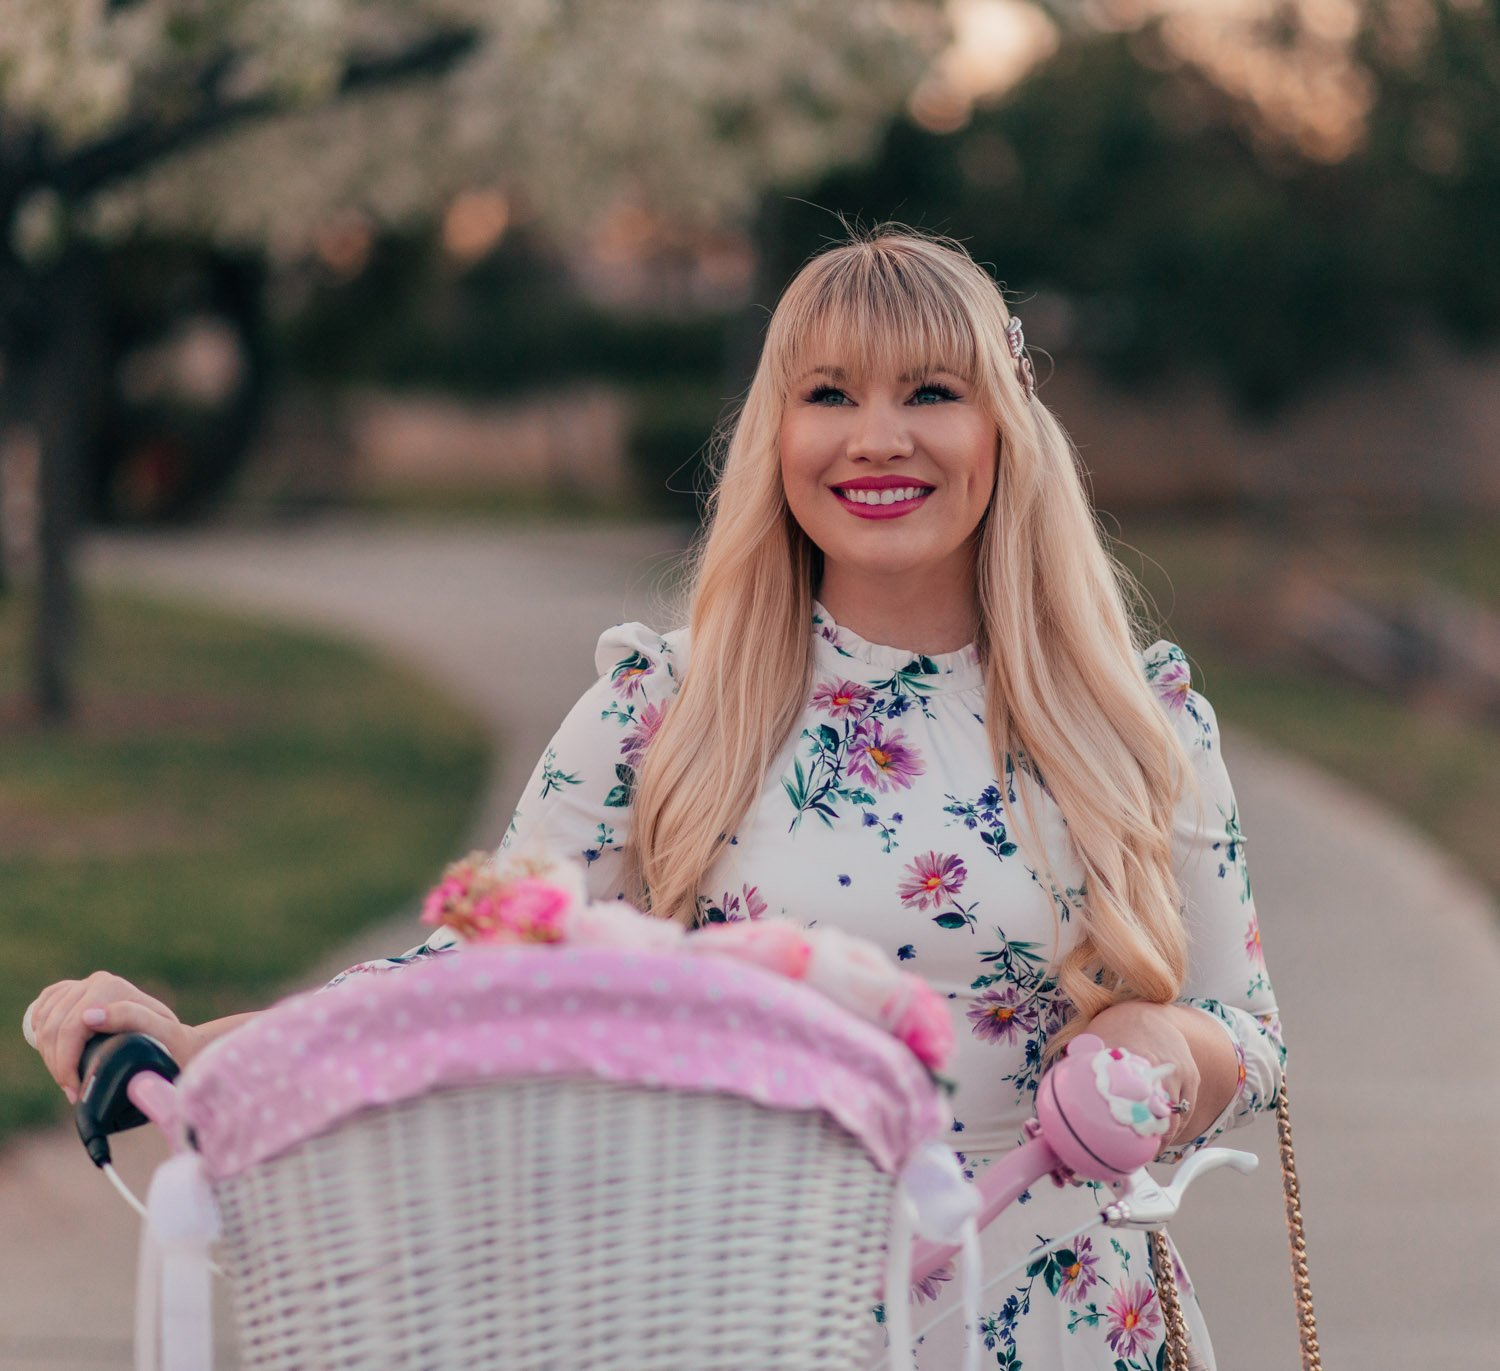 Elizabeth Hugen of Lizzie in Lace shares her Spring Wardrobe Essentials including this white floral dress from Review Australia